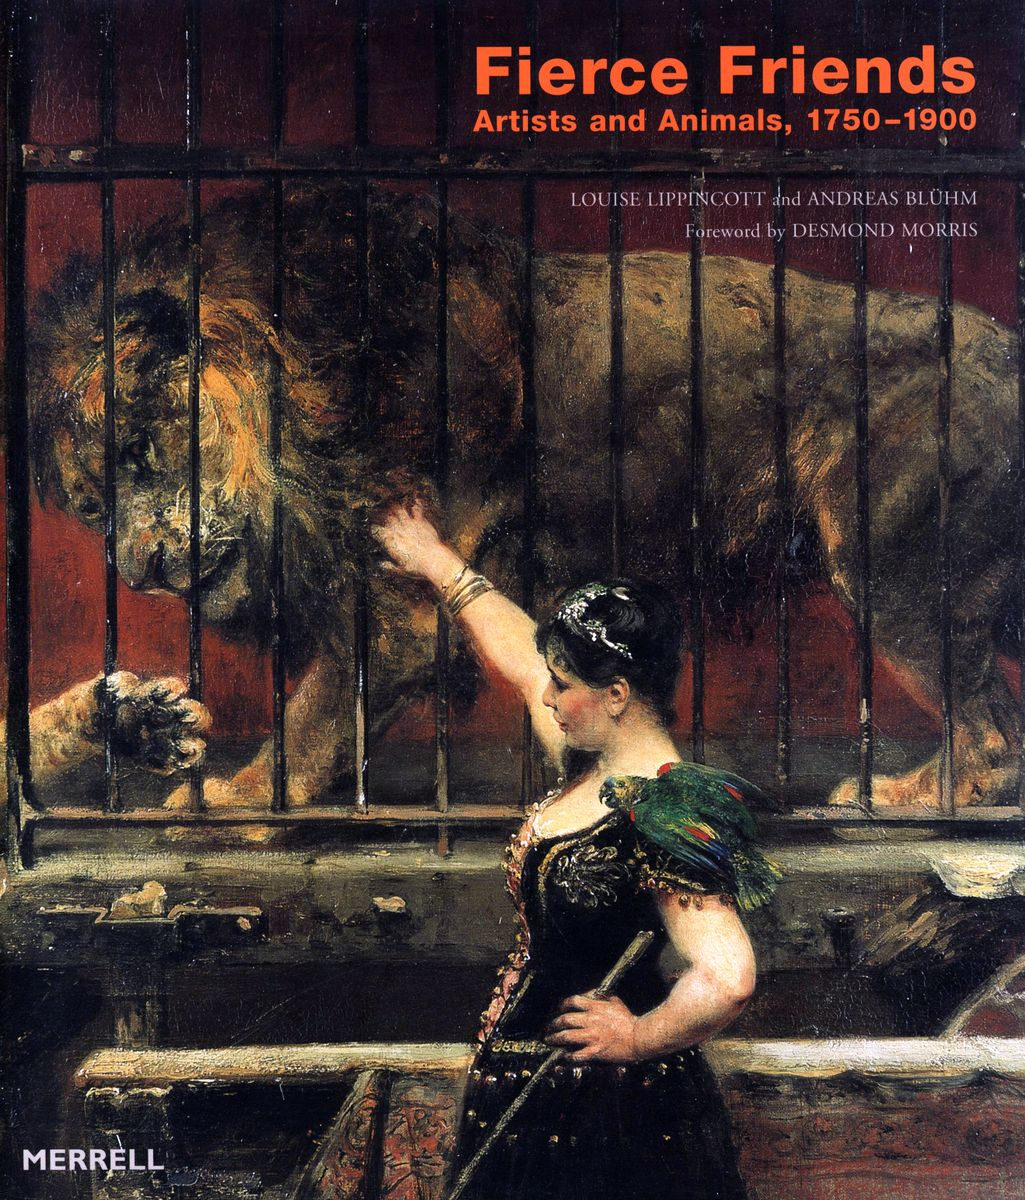 Fierce friends: Artists and Animals, 1750-1900 по 1 299.00 руб от изд. Mercatorfonds